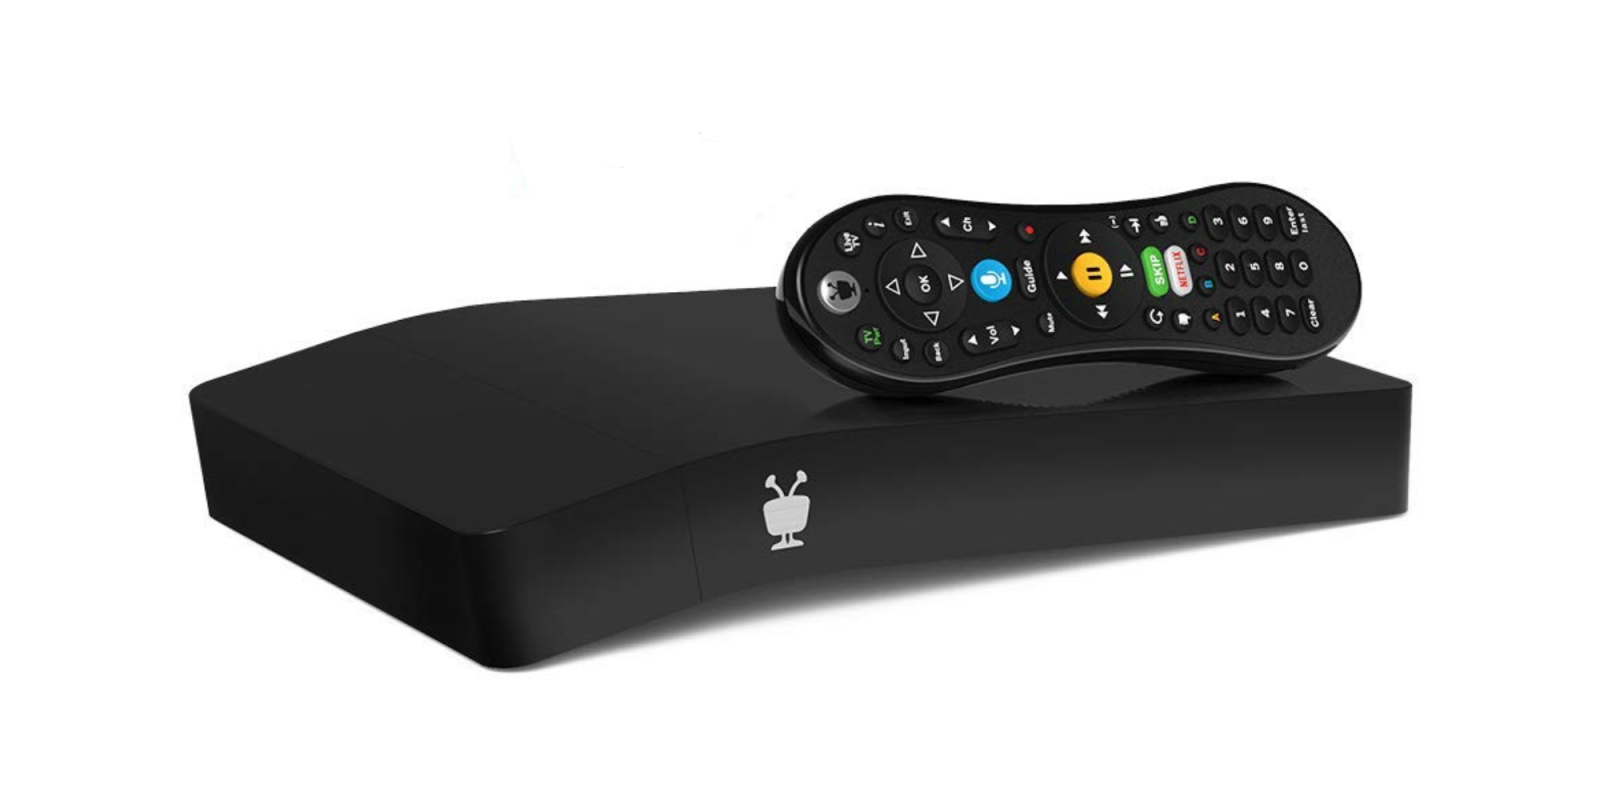 Save on TiVo Bolt Vox 4K 1TB DVR Media Player at $265 ($35 off) + HDHomeRun Tuners from $80